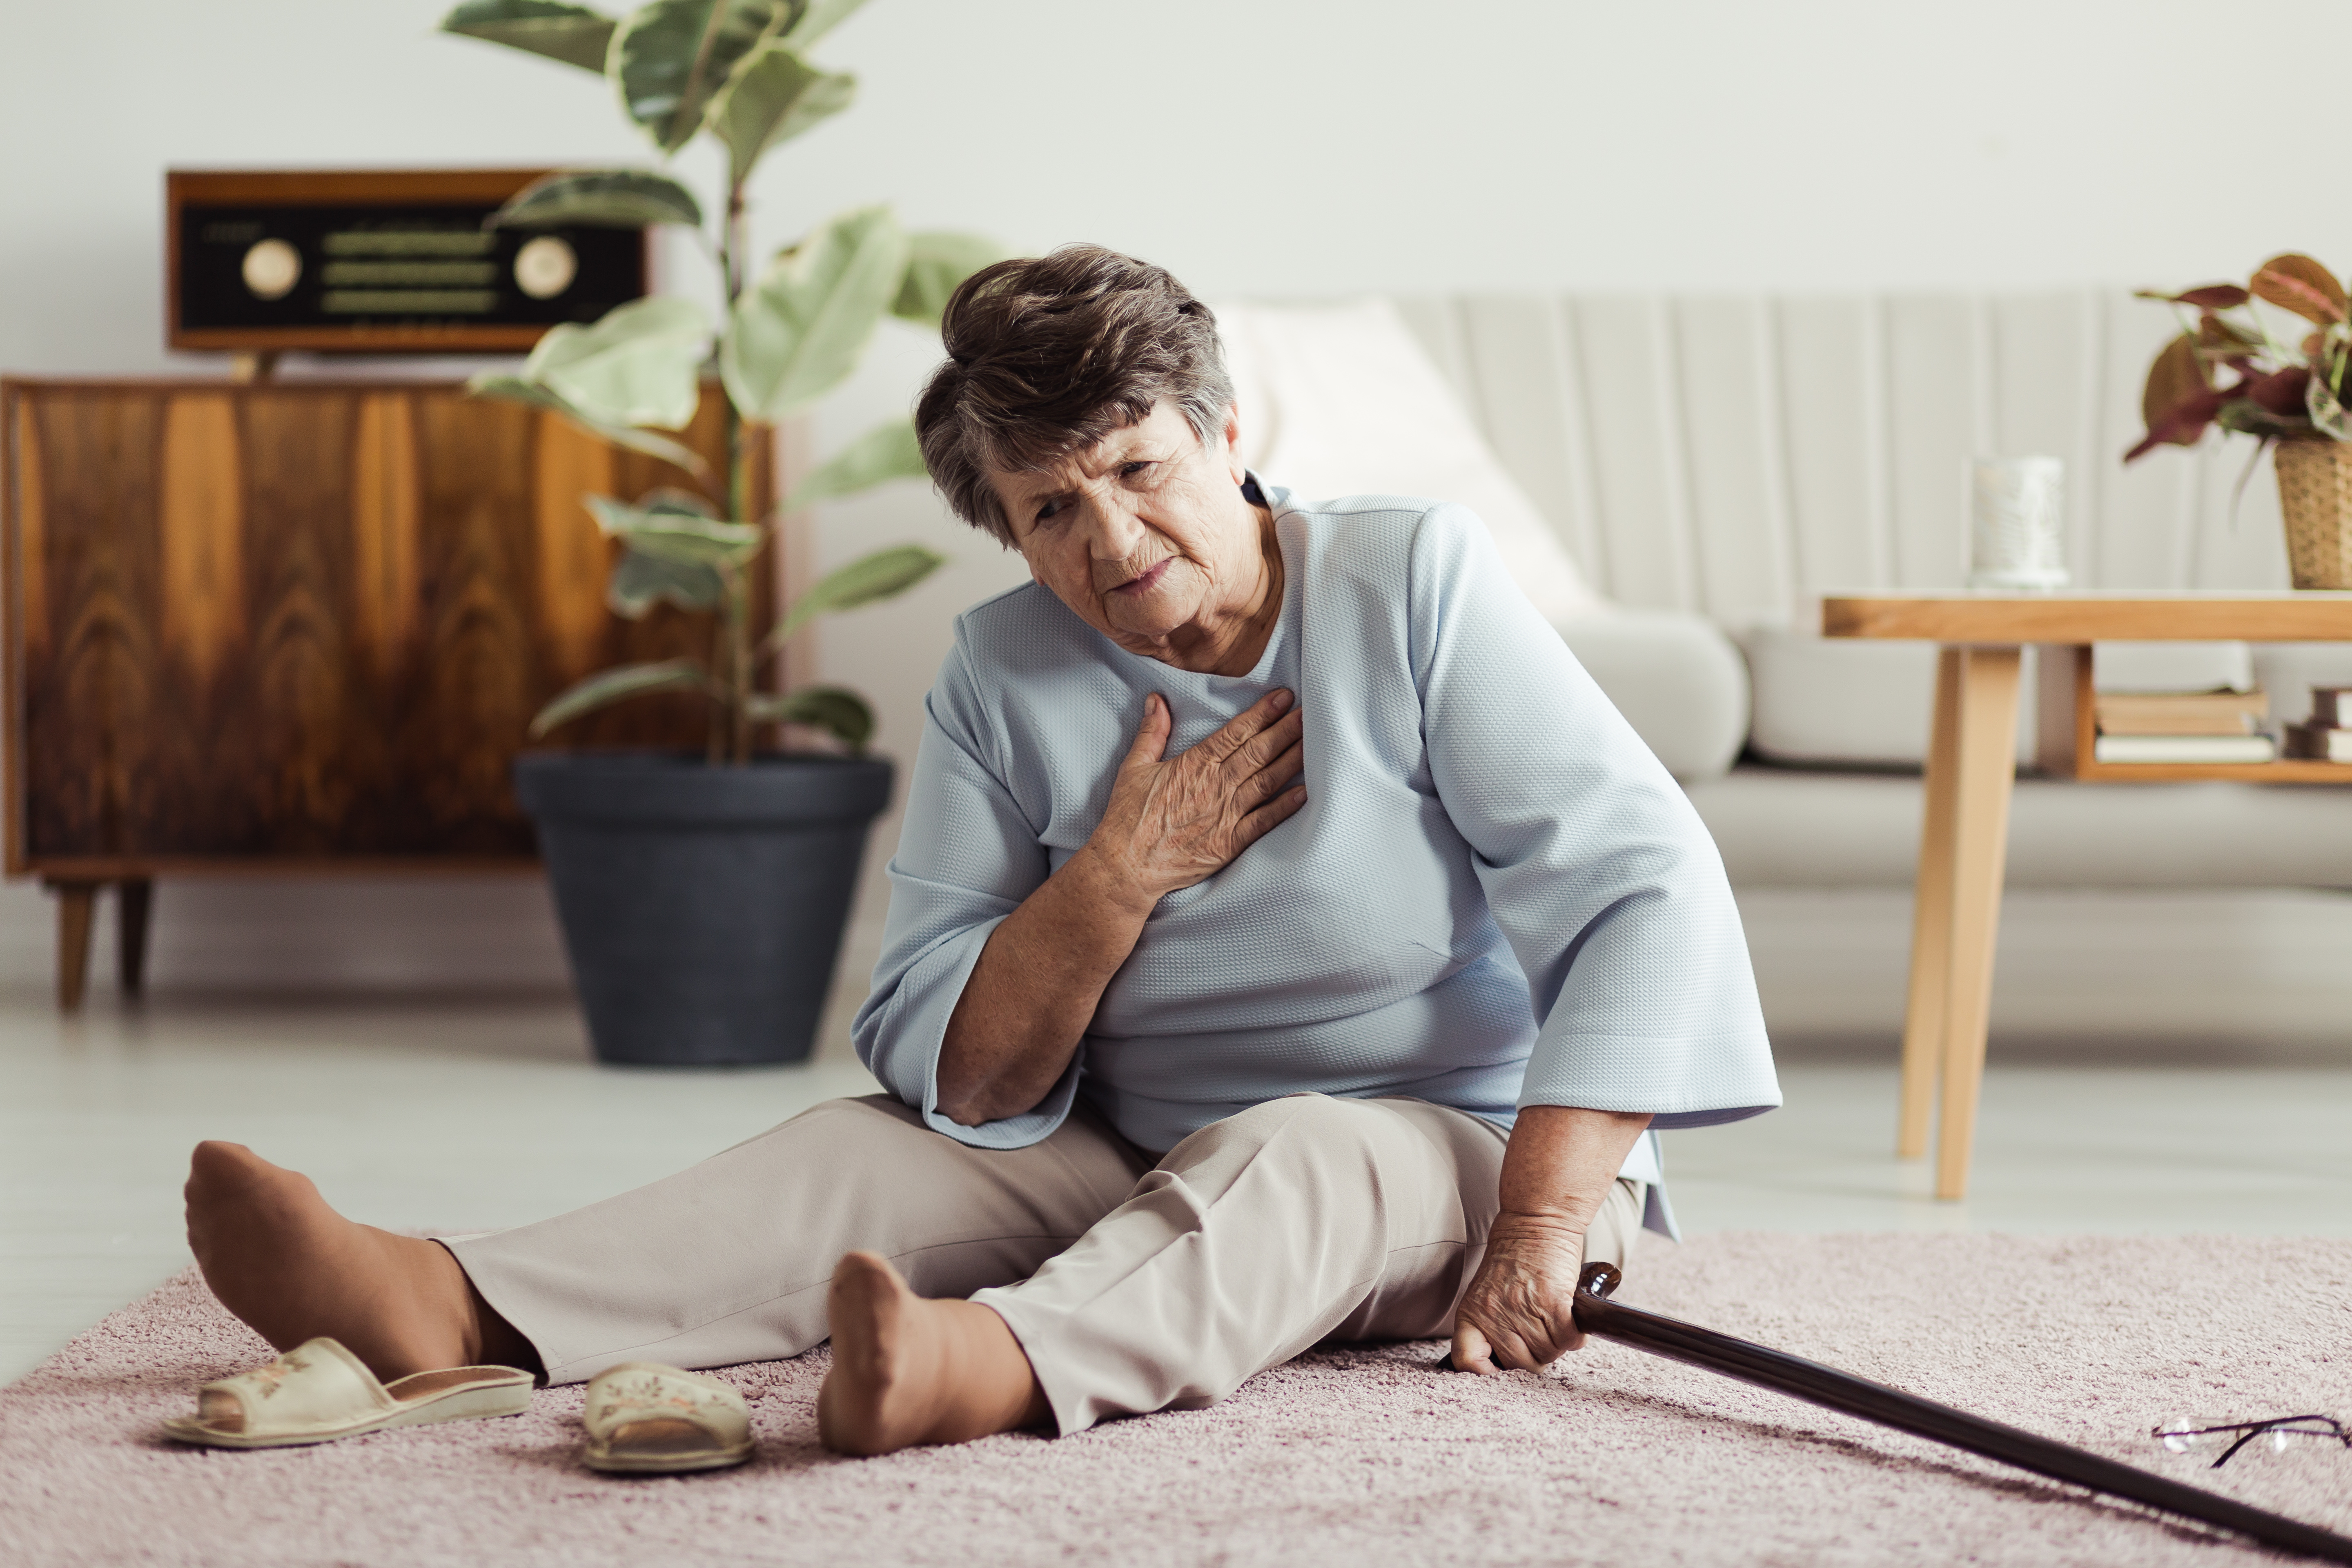 Are Seniors Falling More Than They Used To?